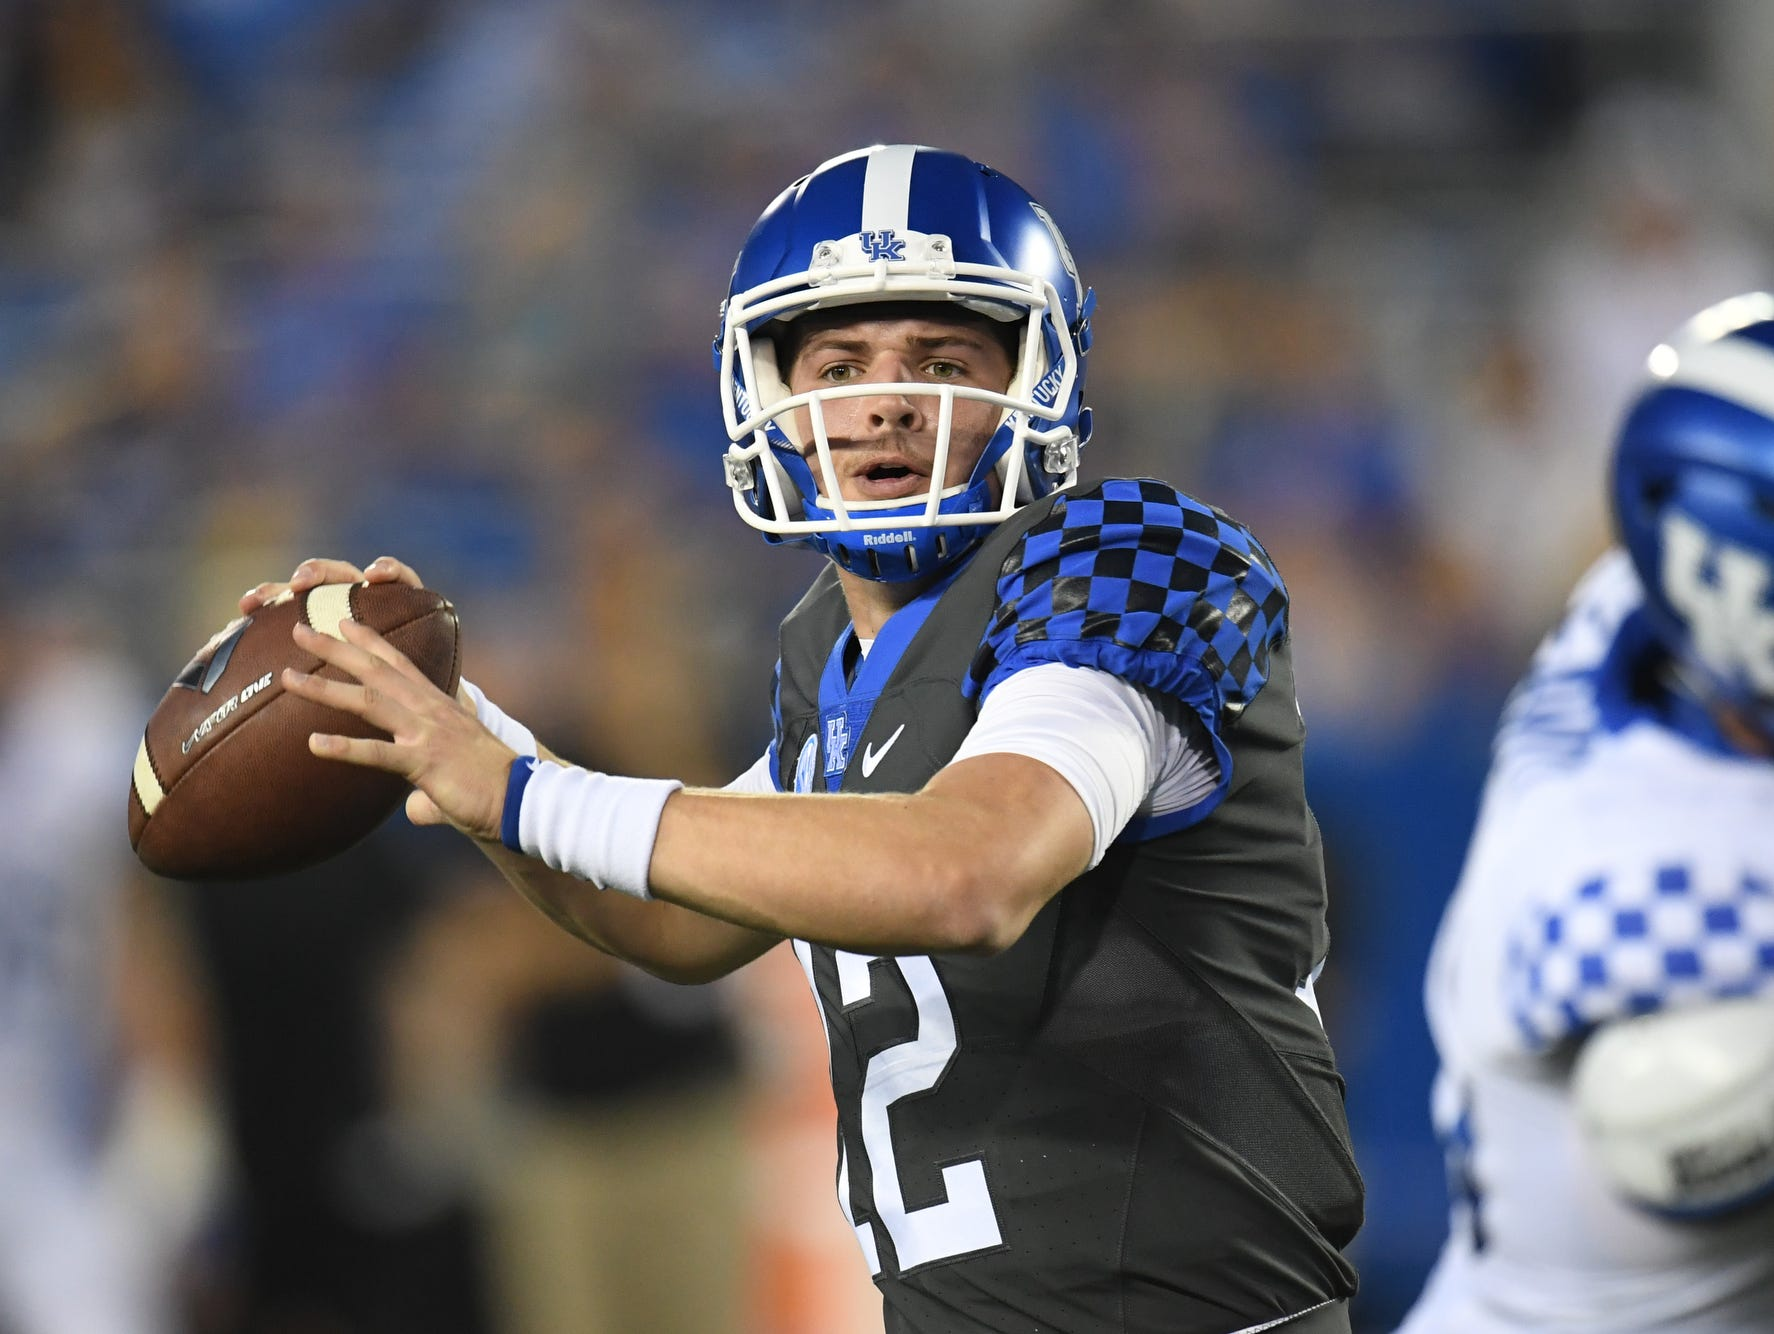 UK QB Gunnar Hoak passes during the University of Kentucky football Blue-White spring game in Lexington, KY on Friday, April 14, 2017.